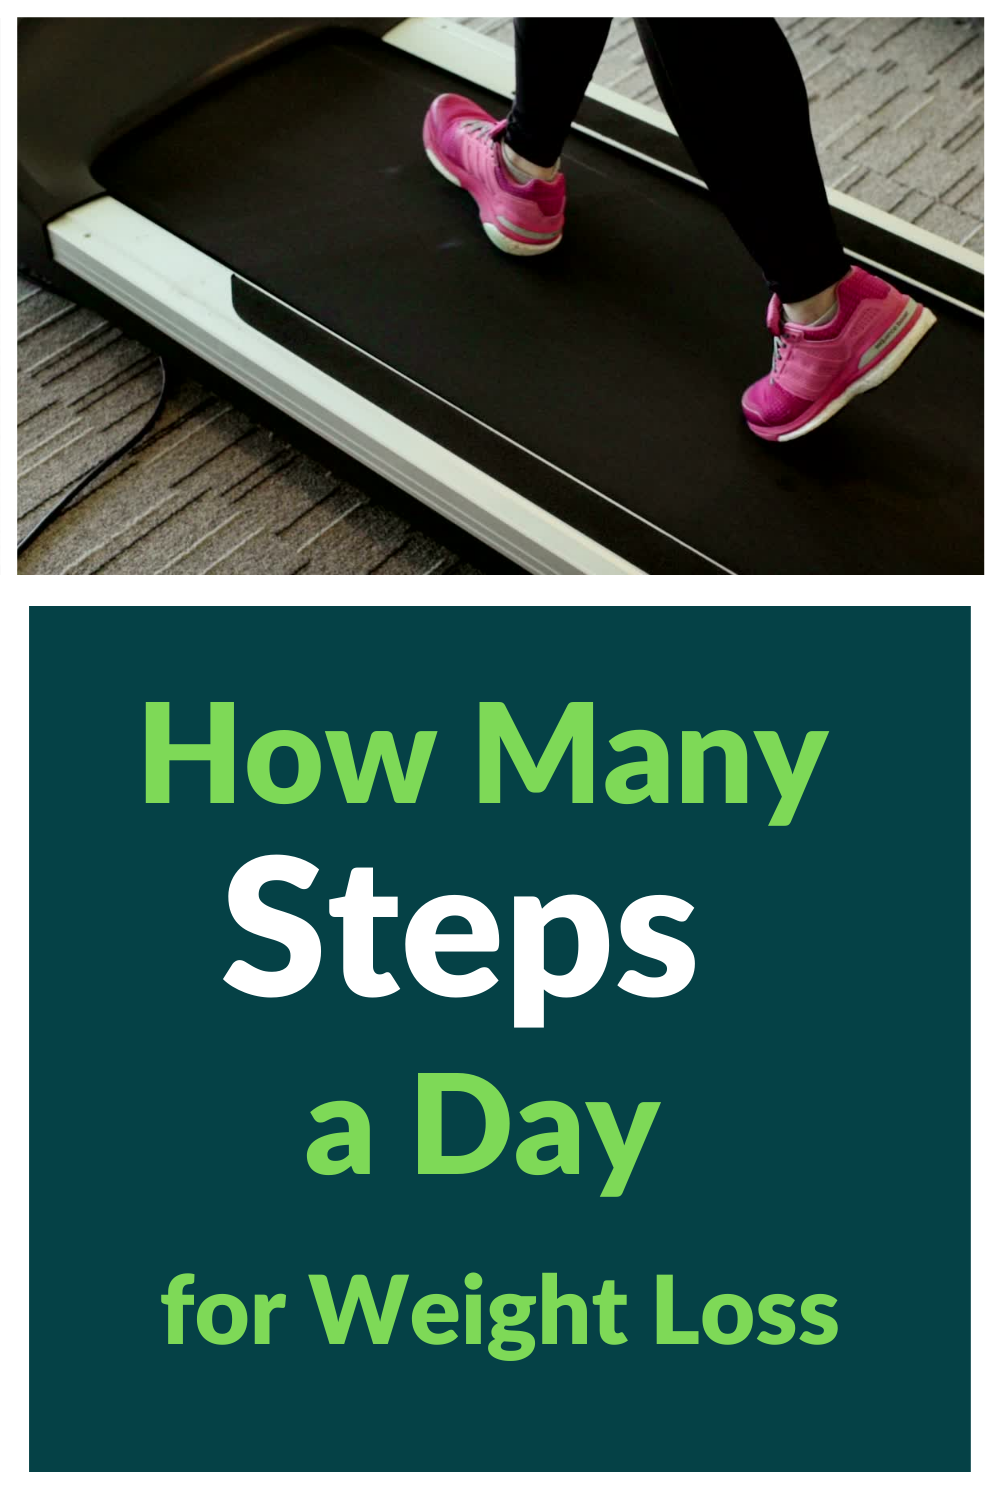 Do you need to walk 10,000 steps a day to lose weight? How many daily steps do you need to lose weight? Read the surprising answers here! #10000steps #10Ksteps #10Kstepsaday #10000stepsaday #weightloss #weightlossjourney